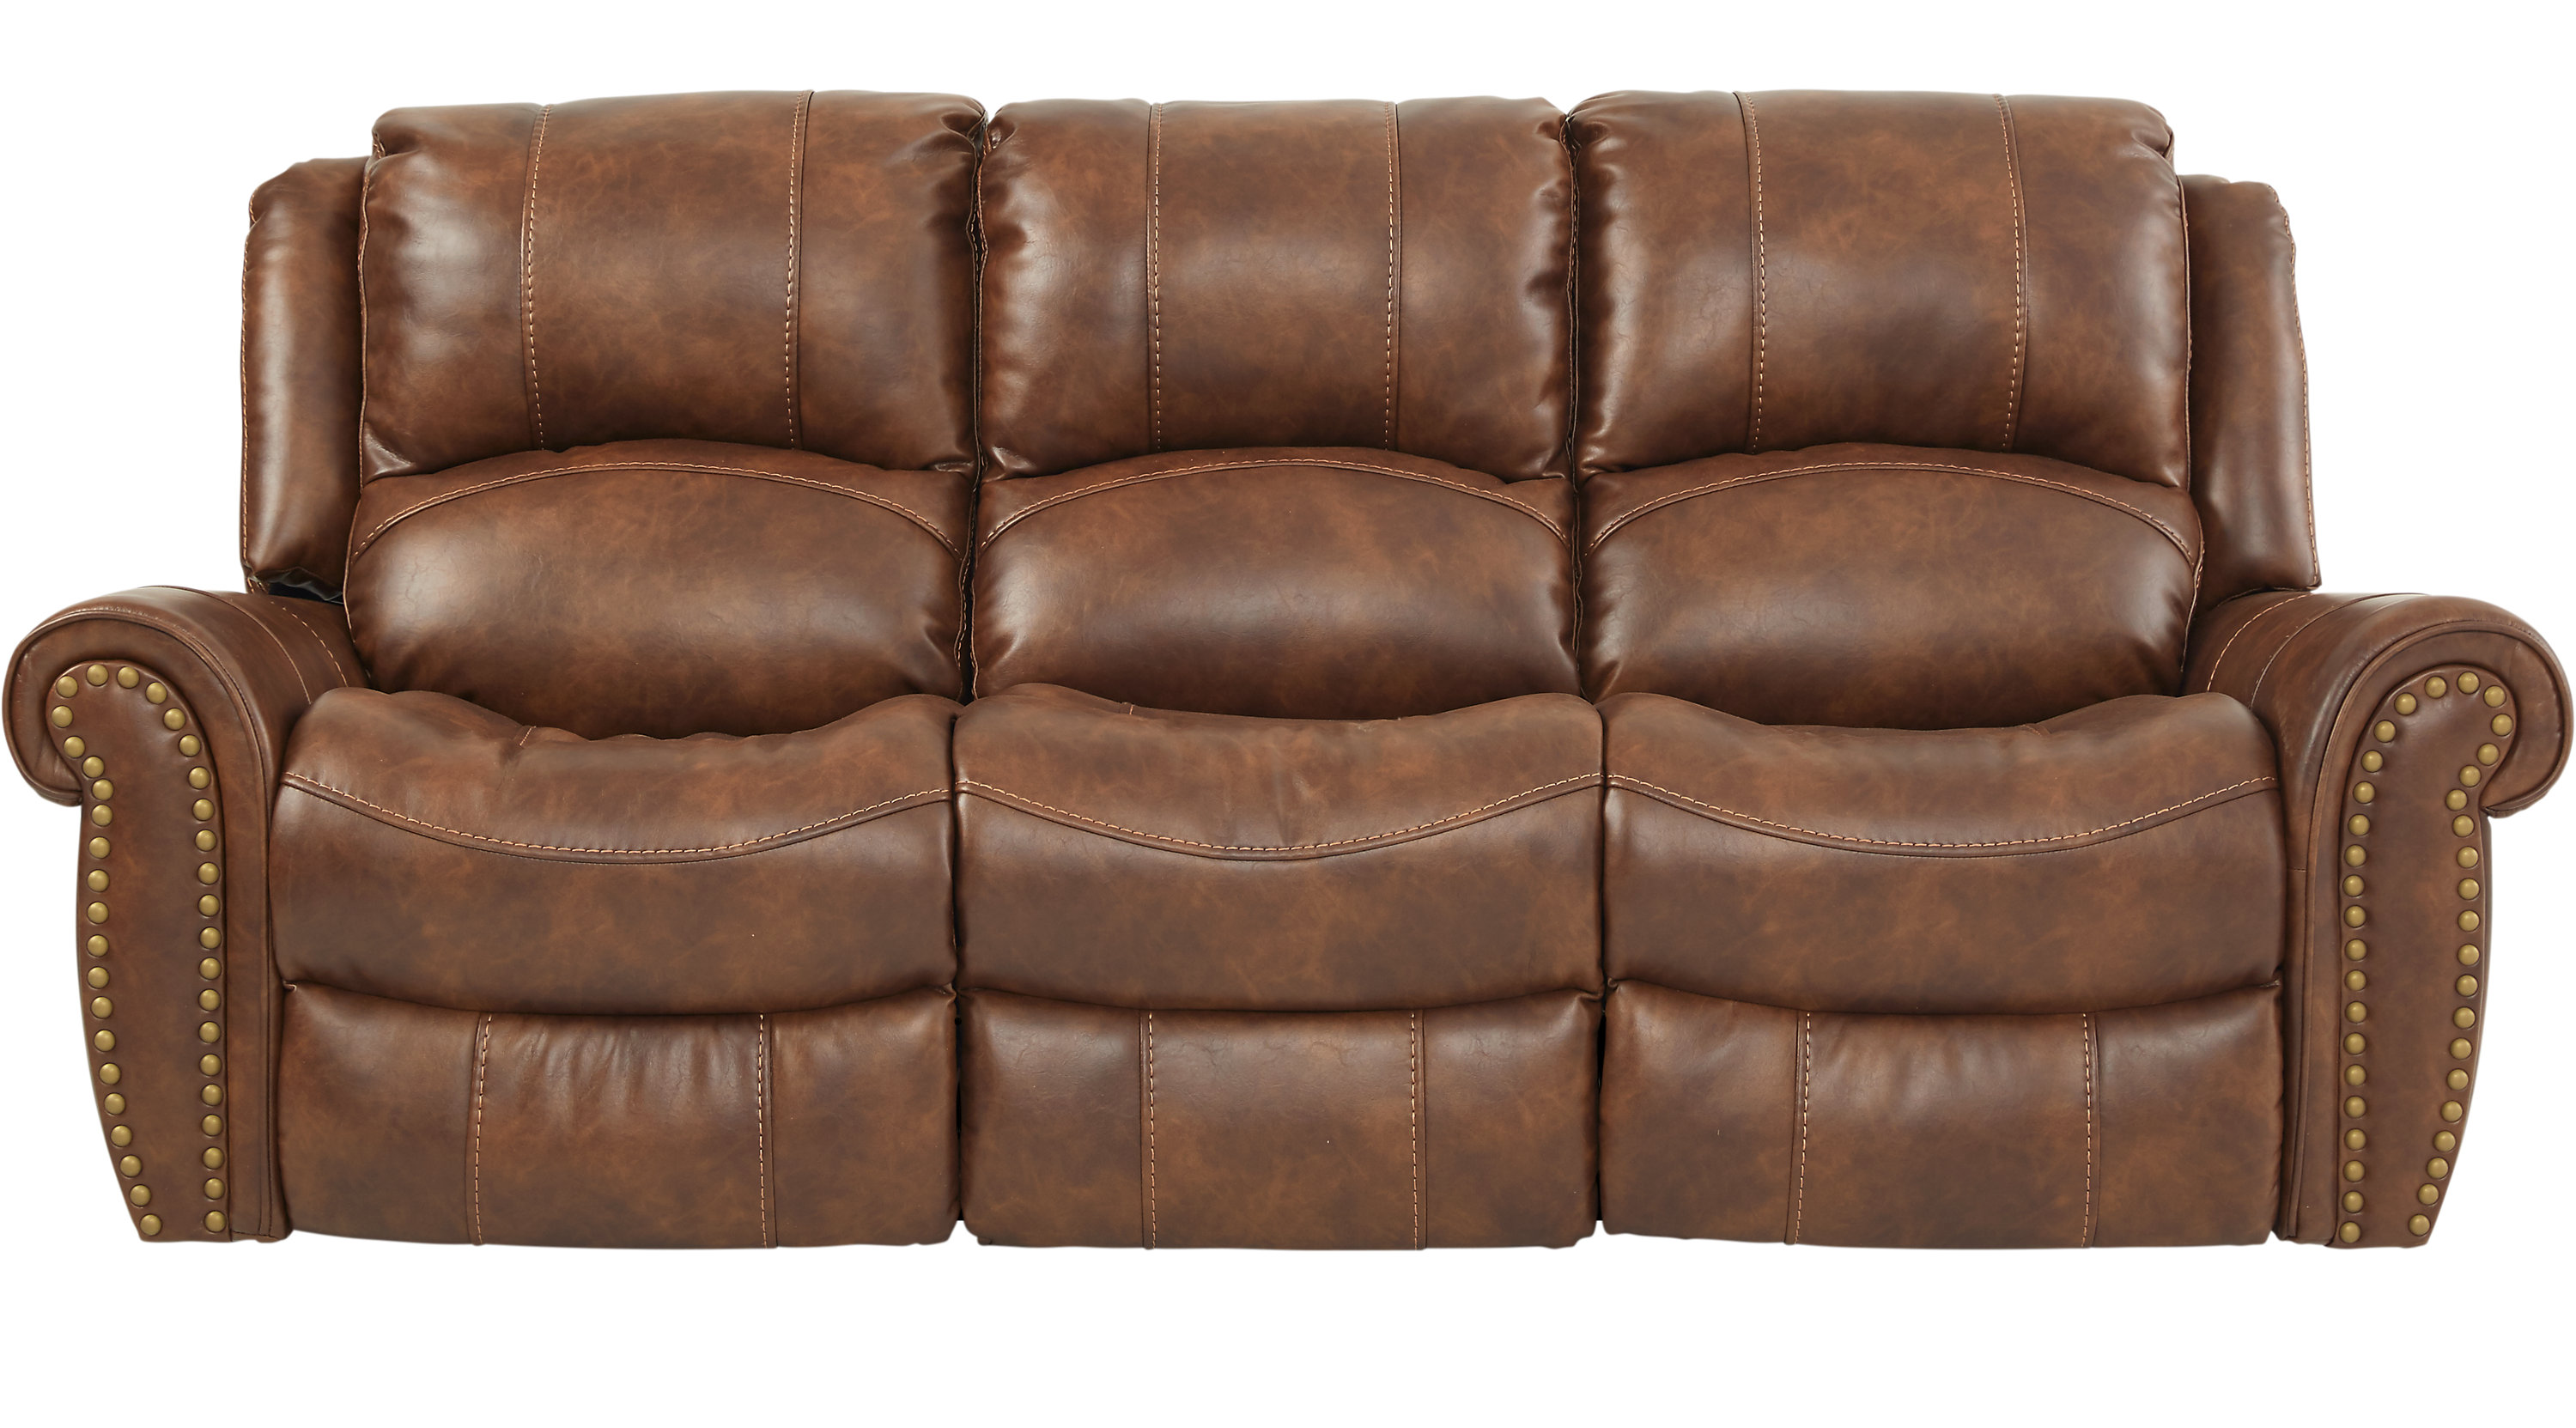 688 00 Alden Point Brown Reclining Sofa Traditional Polyester ~ Baycliffe Reclining Sofa Reviews